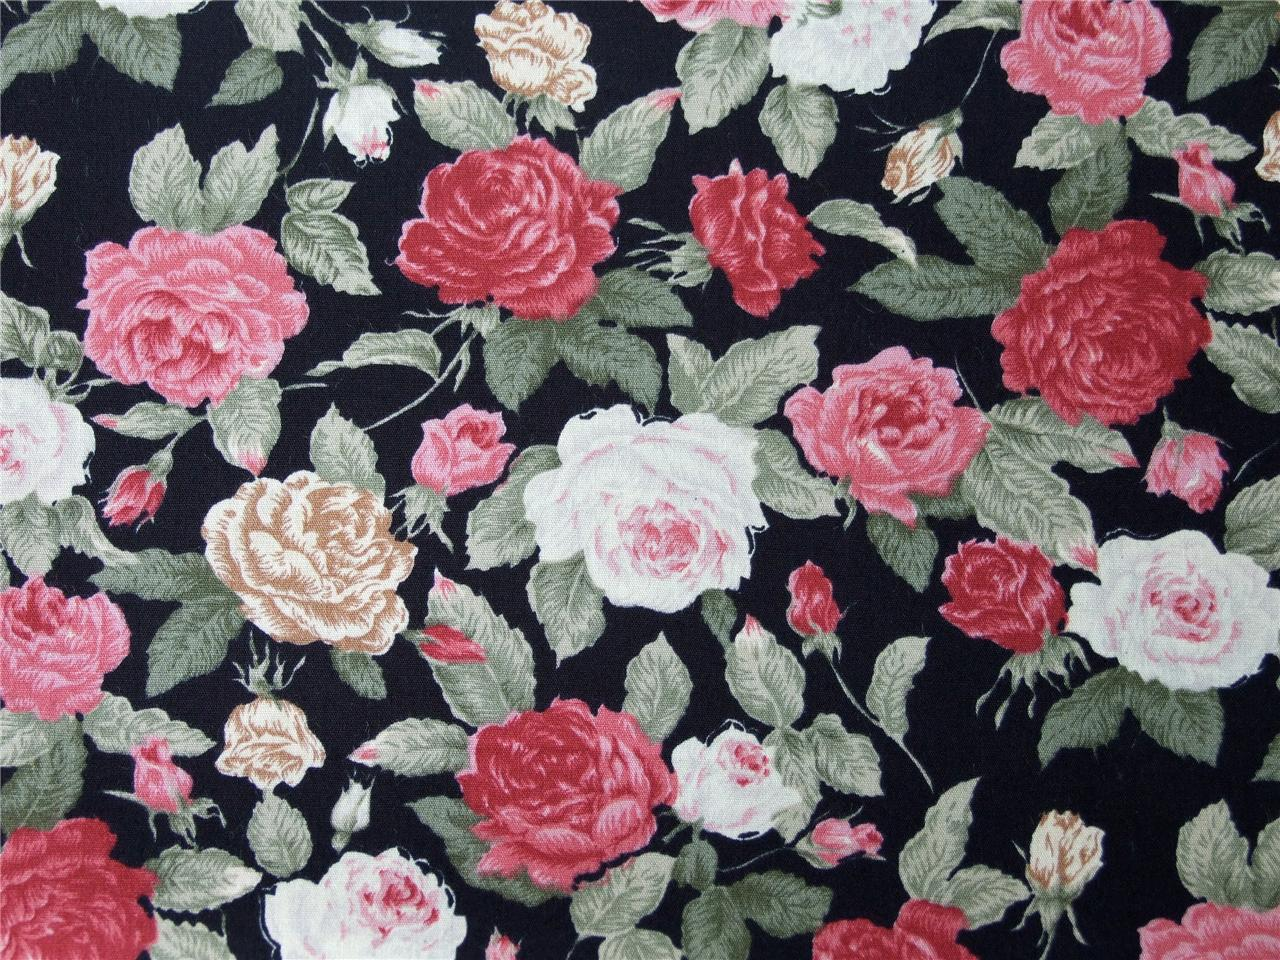 Floral print fabric, floral upholstery fabric, floral drapery fabric. Cotton, silk, polyester, rayon, linen floral fabric. This is a fabric store where you can buy floral fabric.